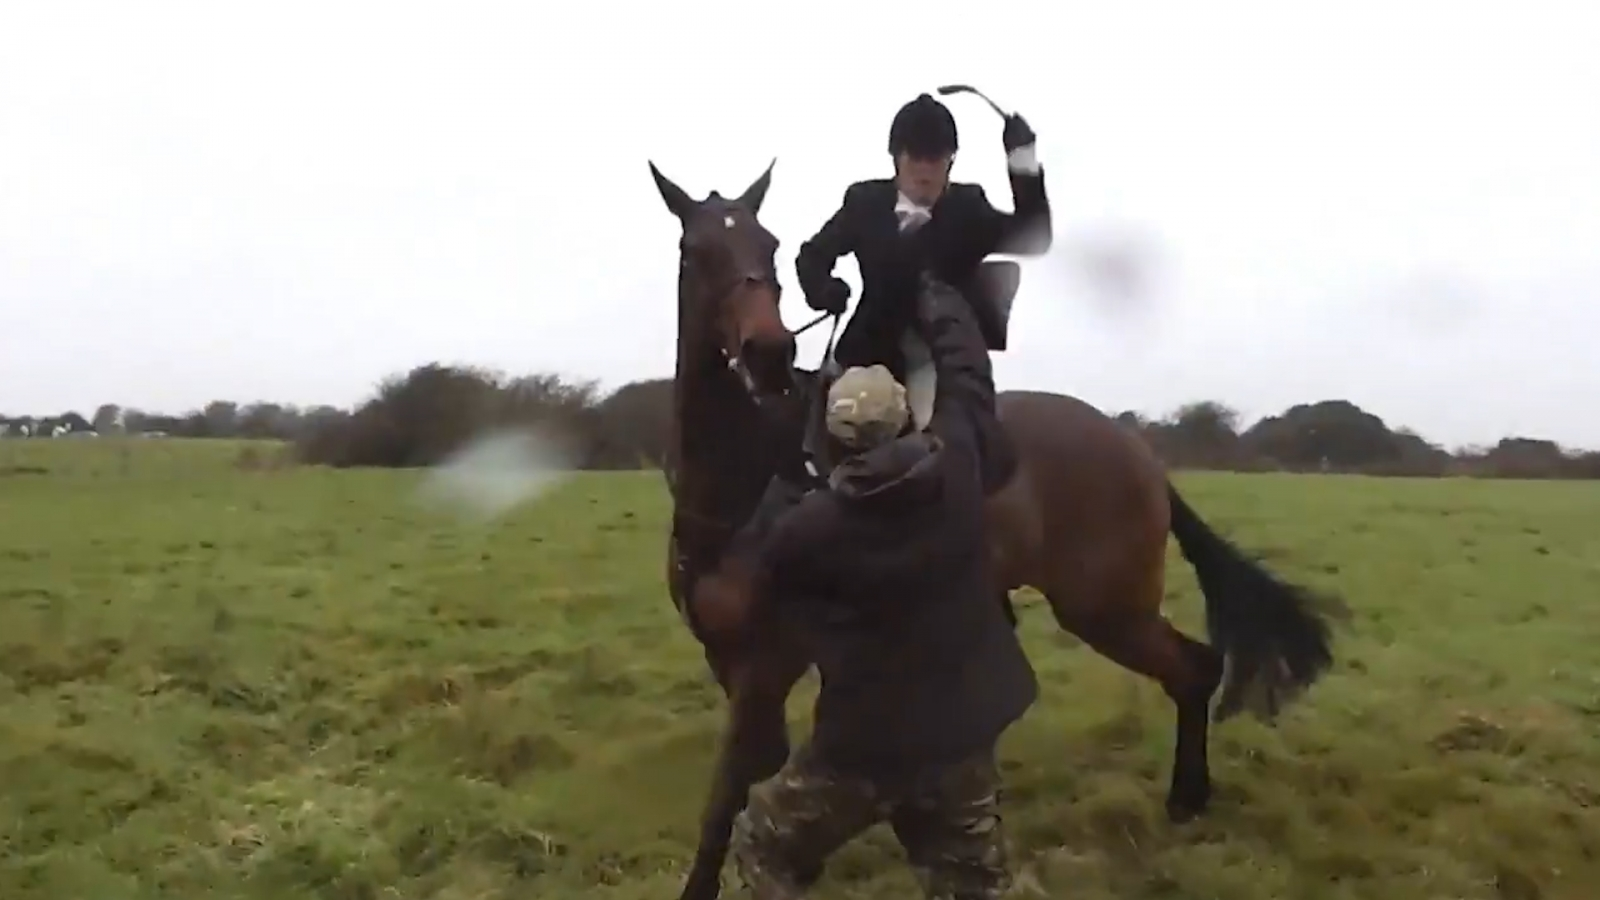 Fox hunter seen whipping activist with riding crop